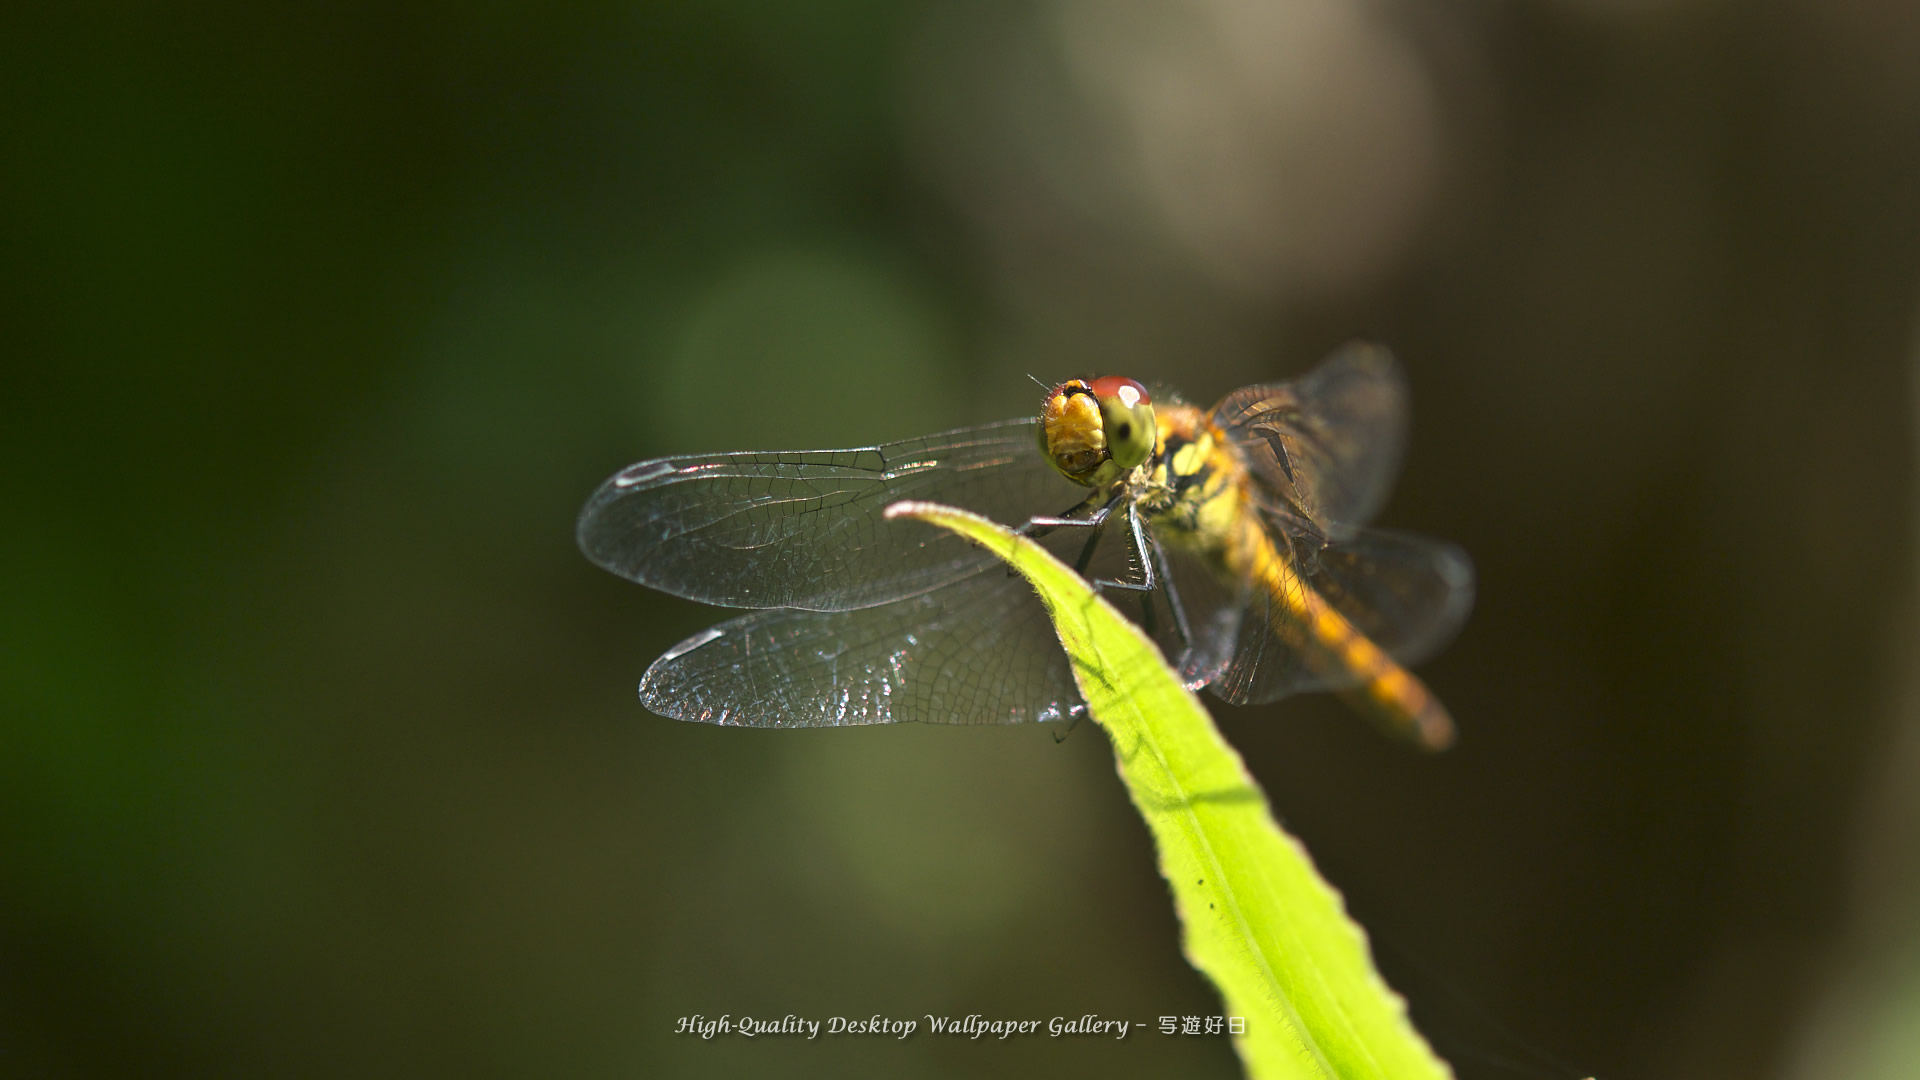 Insect wallpaper - 52715